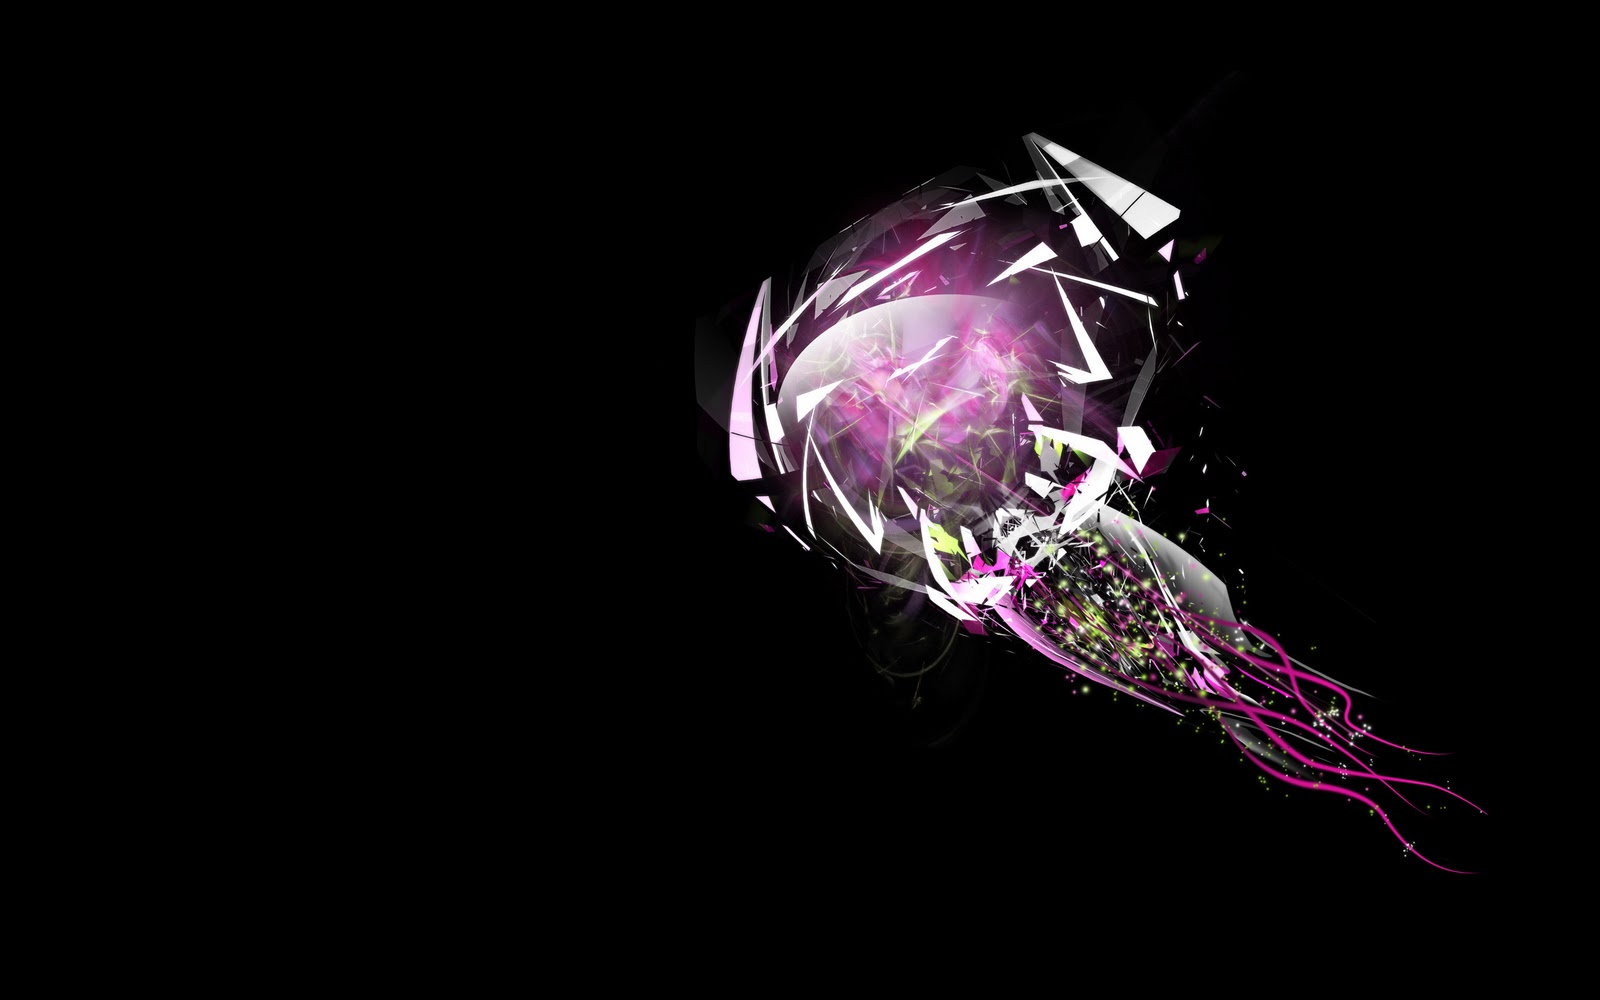 Abstract purple digital diamond hd wallpaper The Wallpaper Database 1600x1000